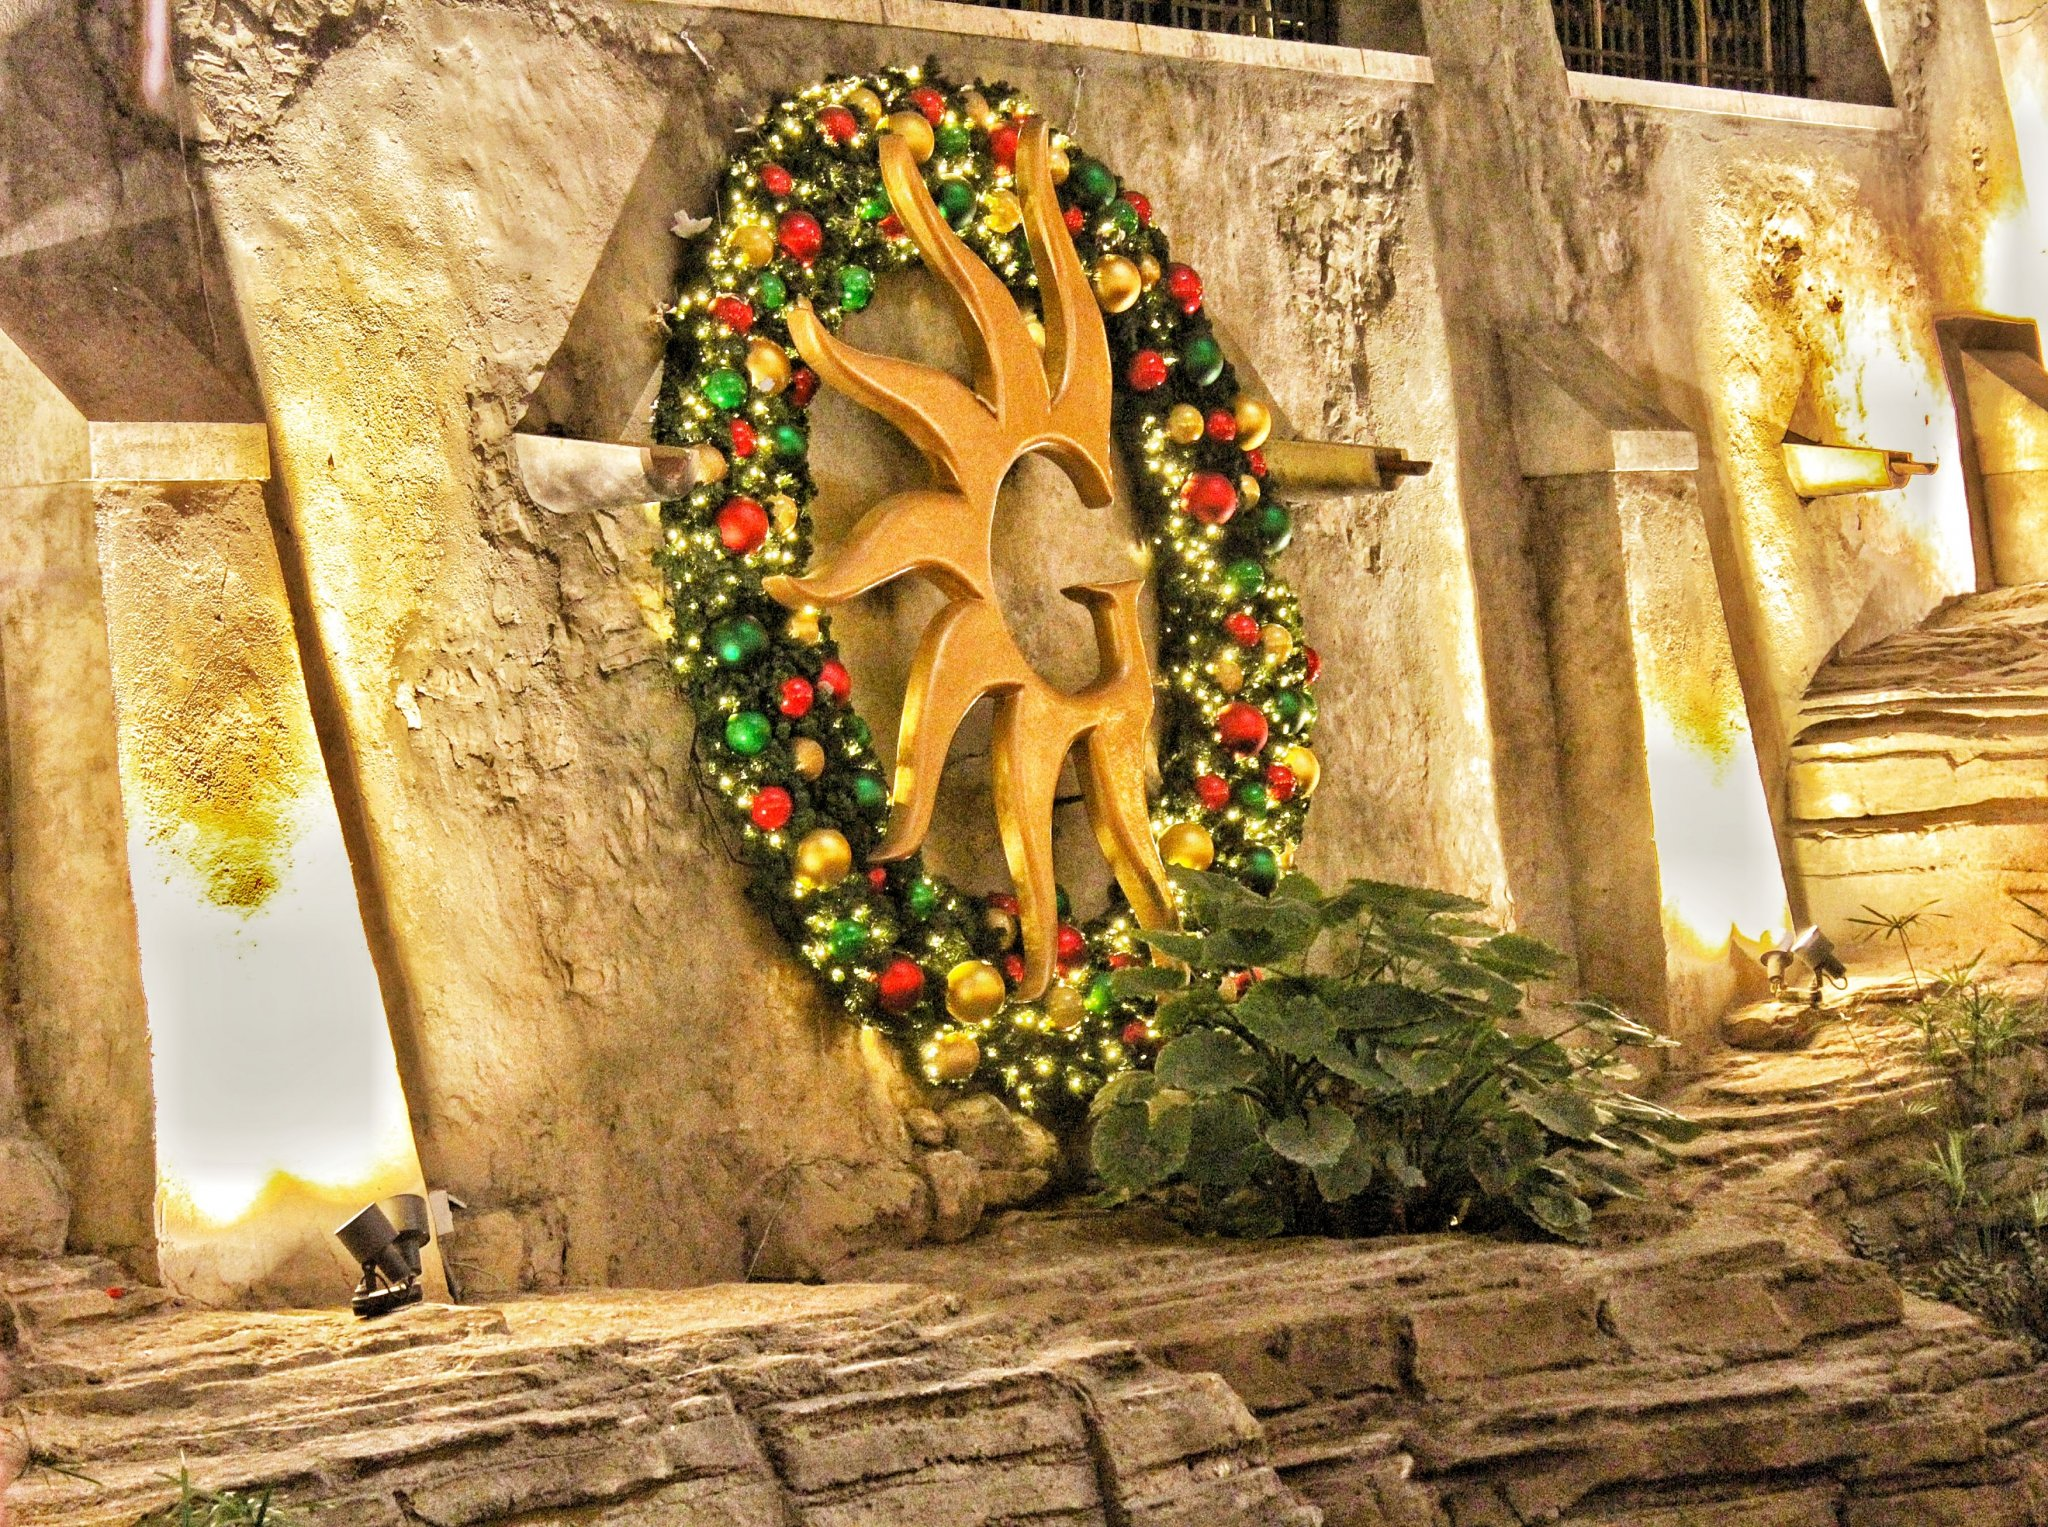 Gaylord Texan Resort Hotel & Conference Center Celebrates a Lone Star Christmas